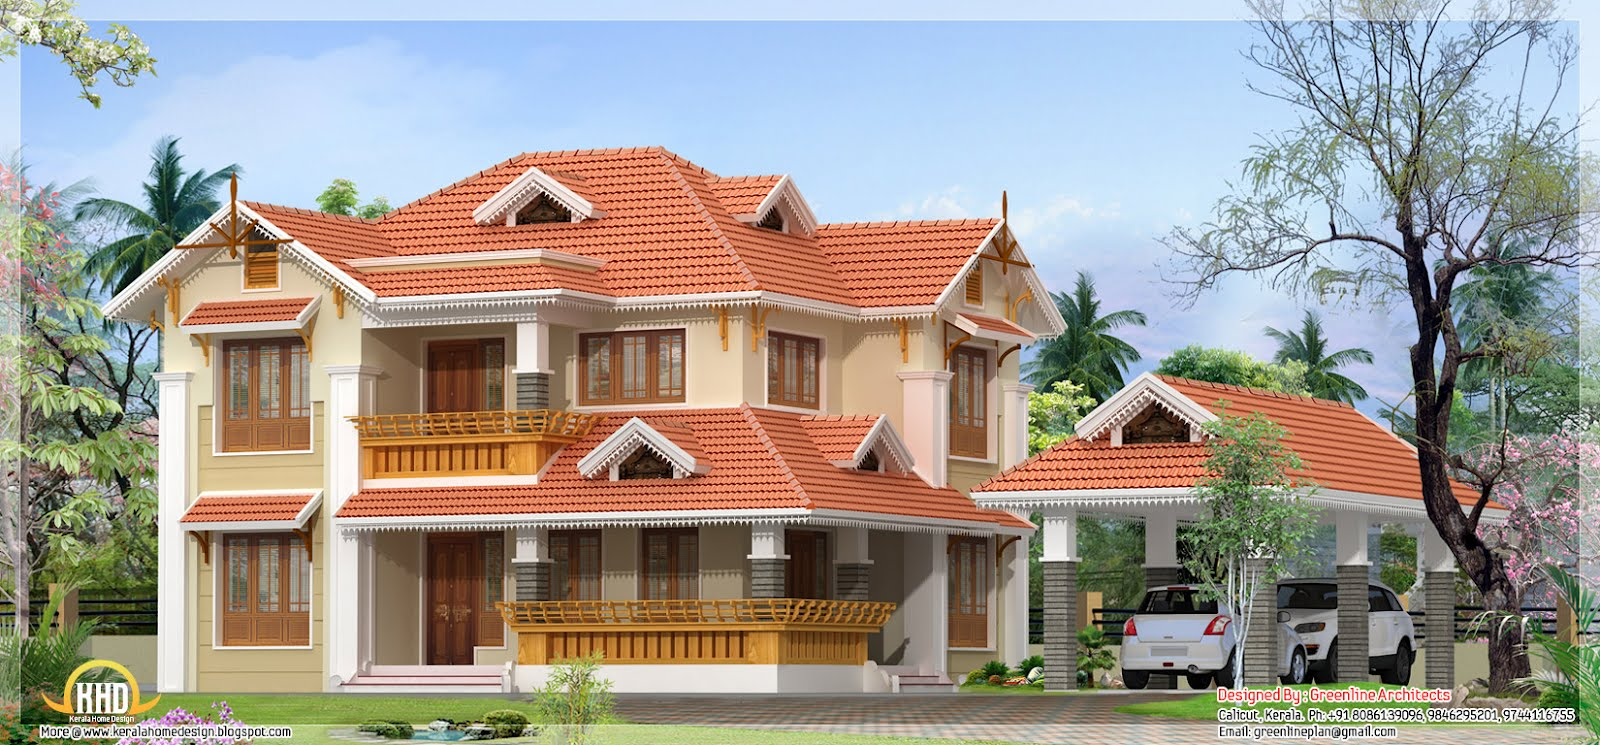 July 2012 kerala home design and floor plans for House plans with photos in kerala style